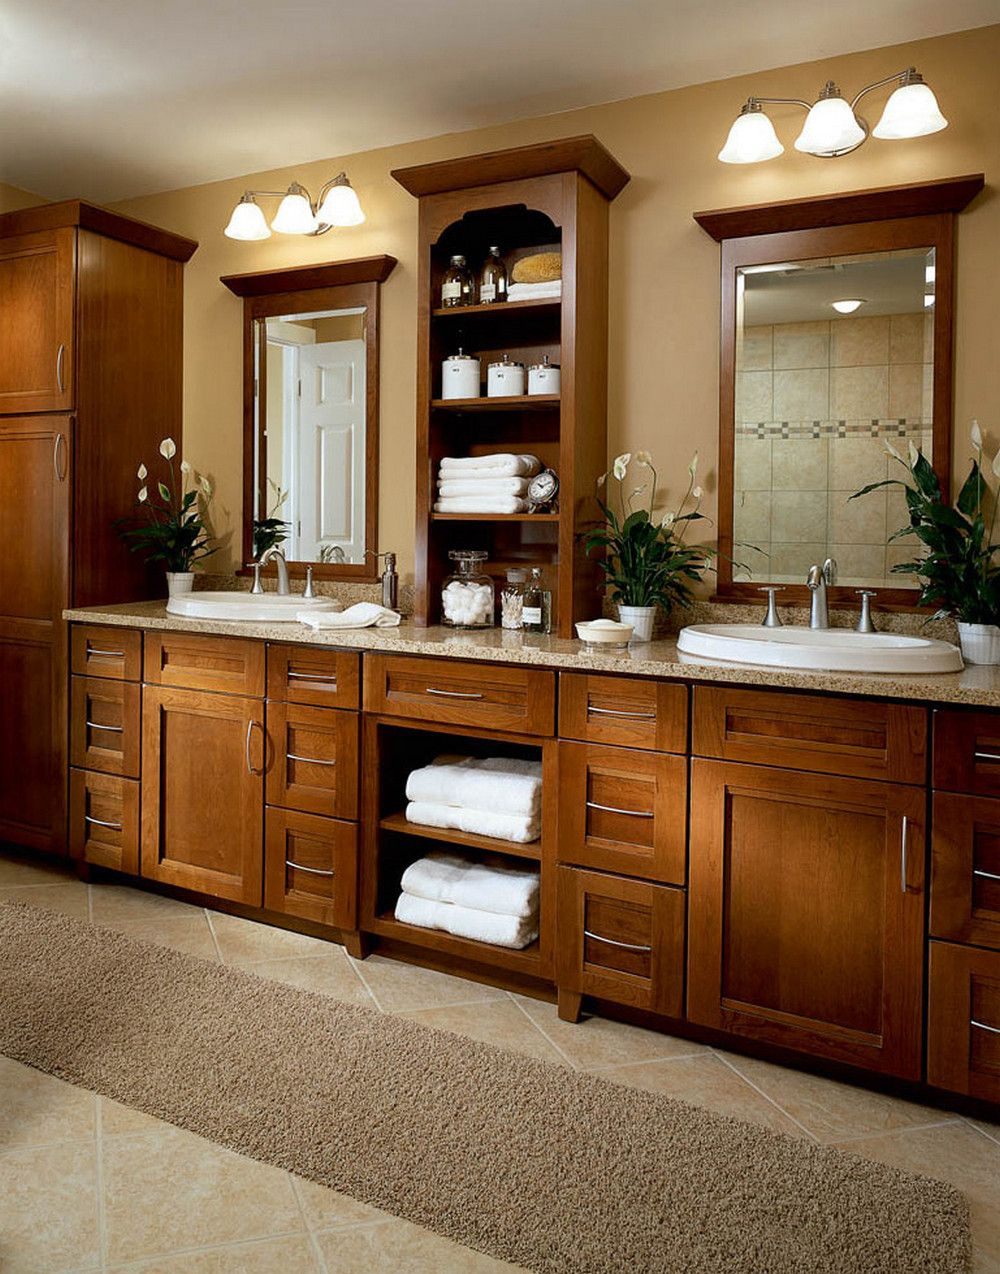 Tower Between Two Sinks Good Idea For Use Of Space Also Like